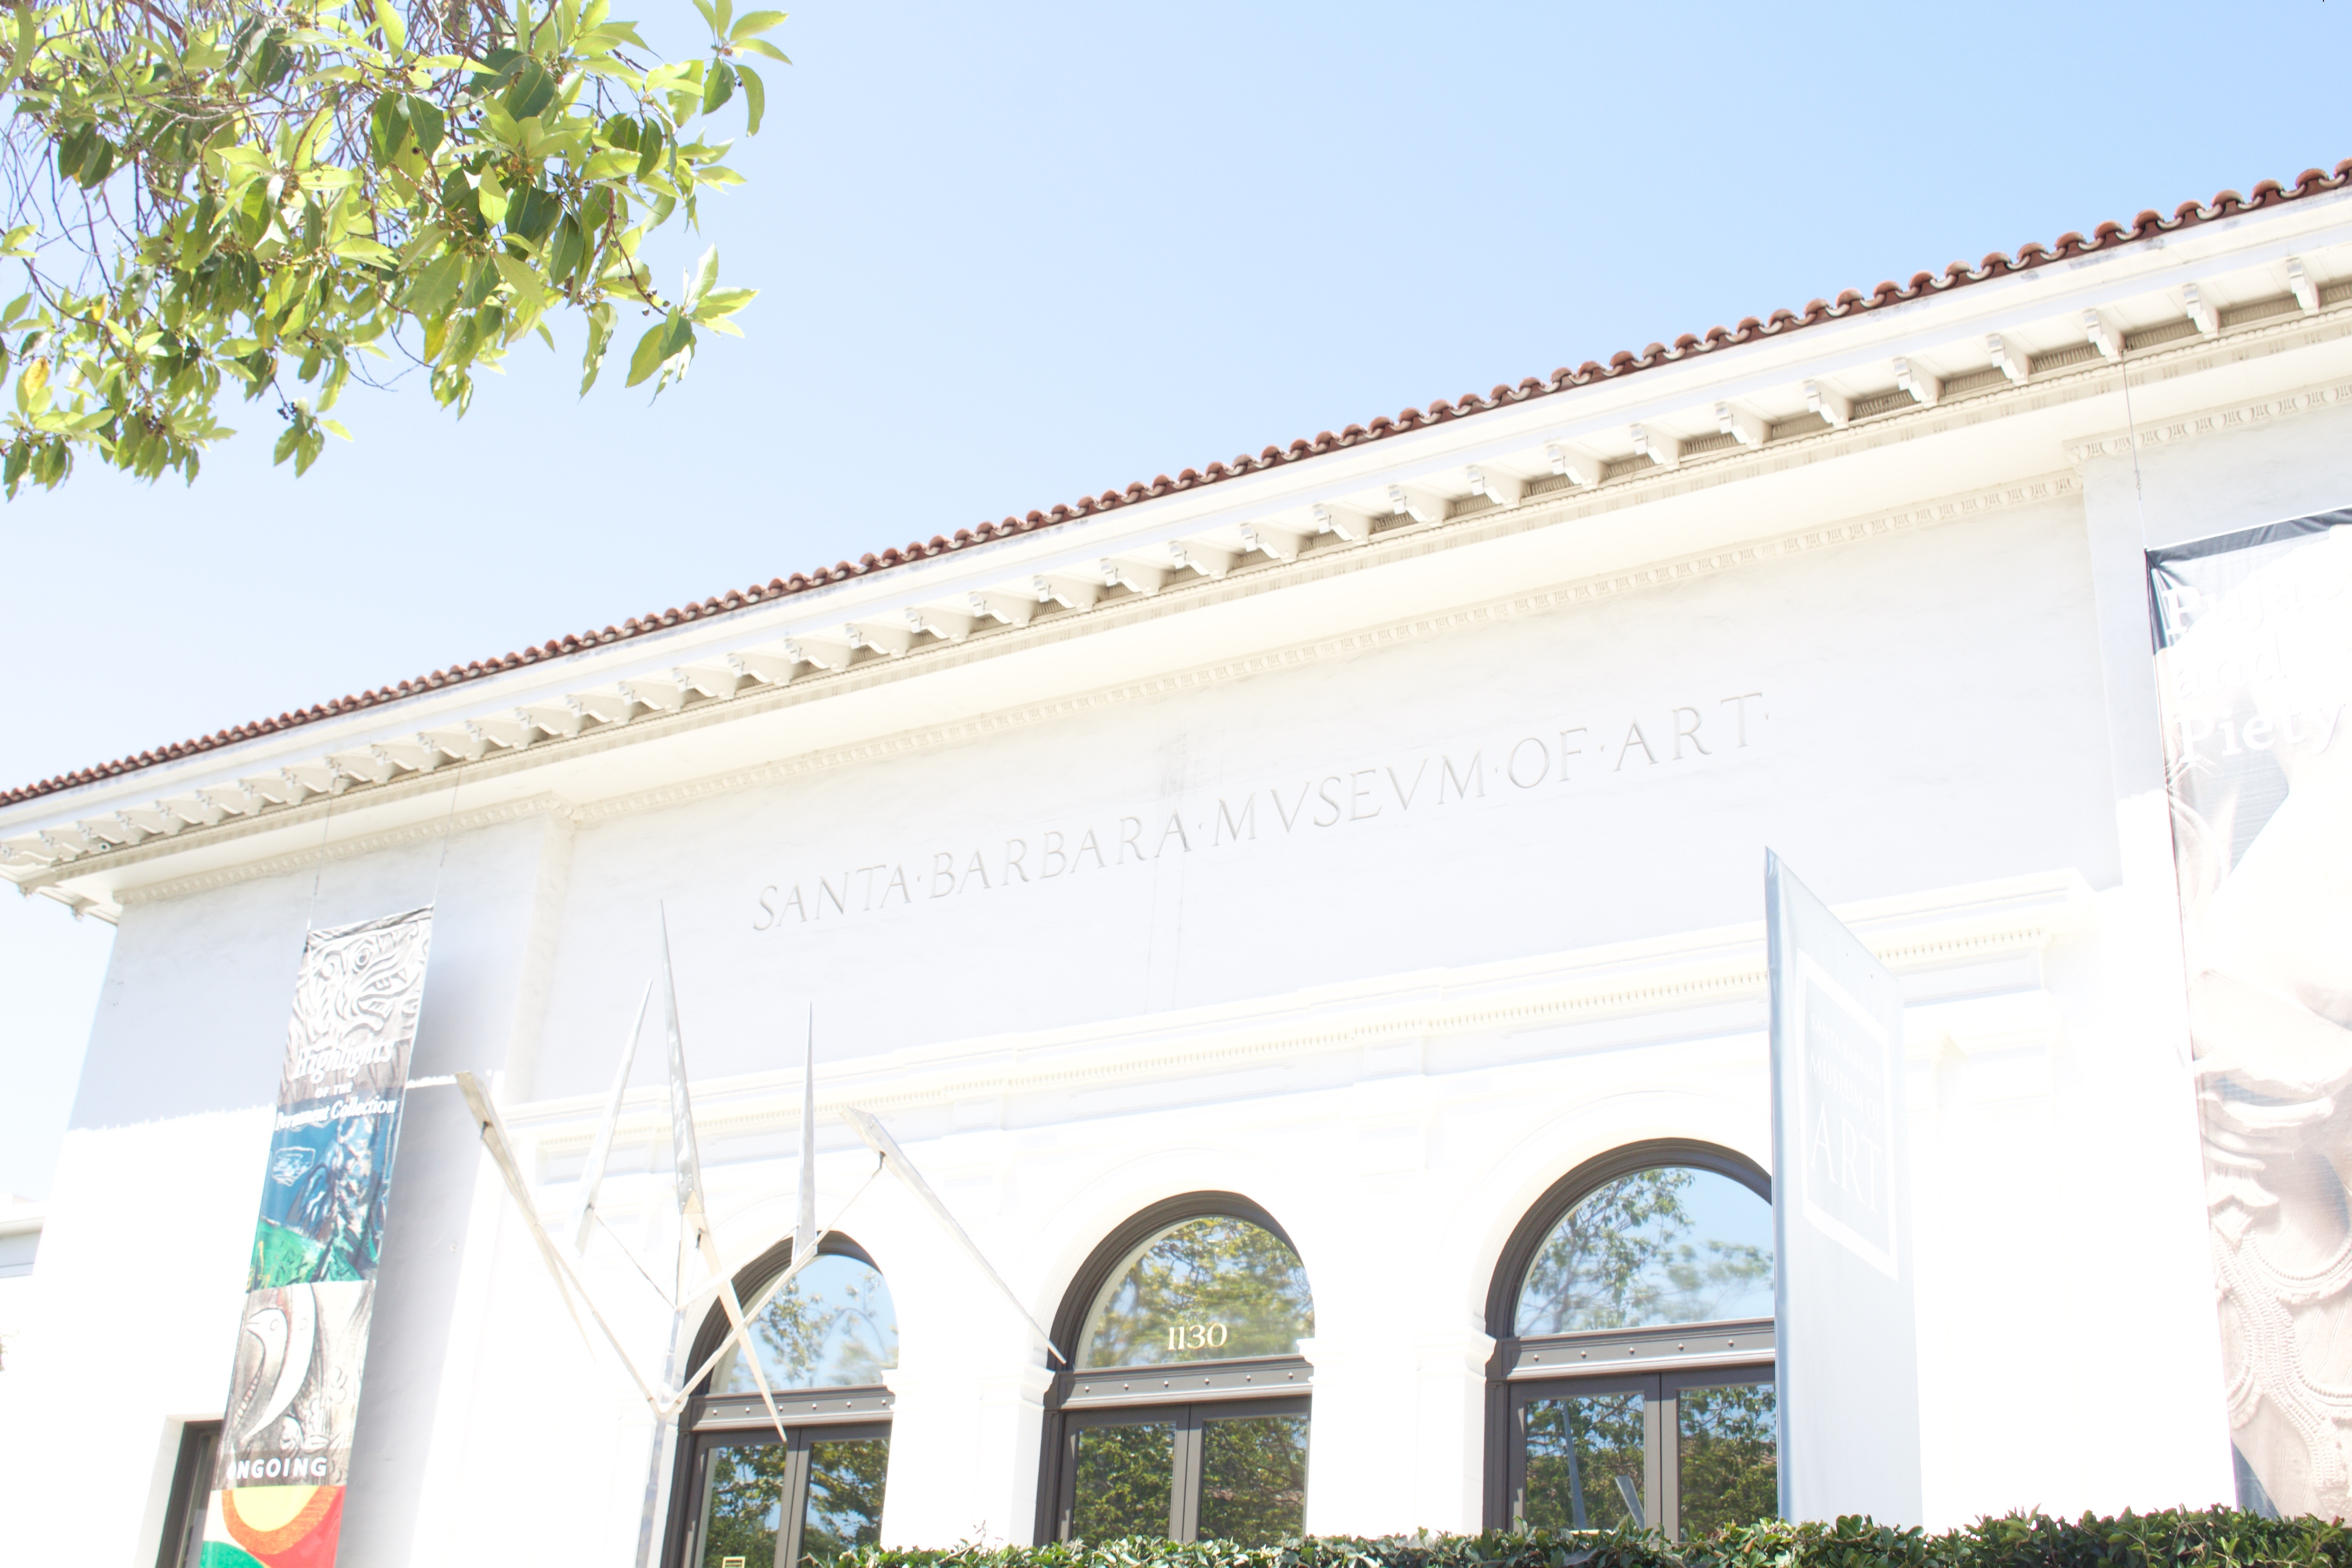 Santa Barbara Museum of Art - My Styled Life